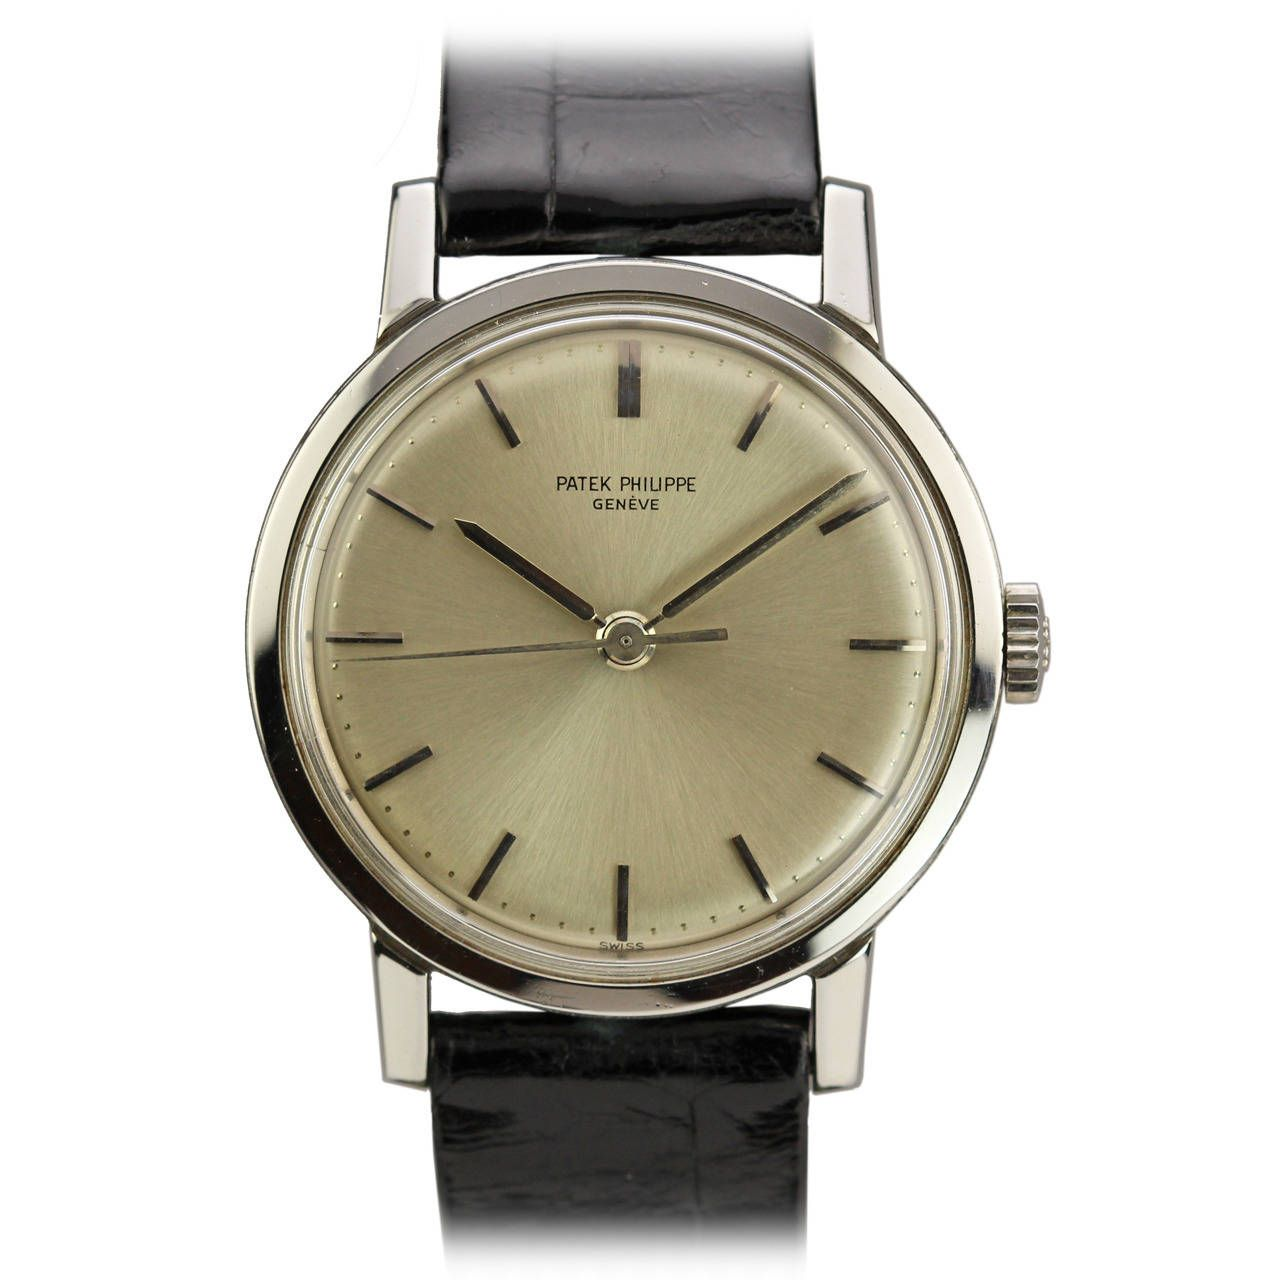 Stainless Steel Calatrava Wristwatch Ref 3483 circa 1960s by Patek Philippe